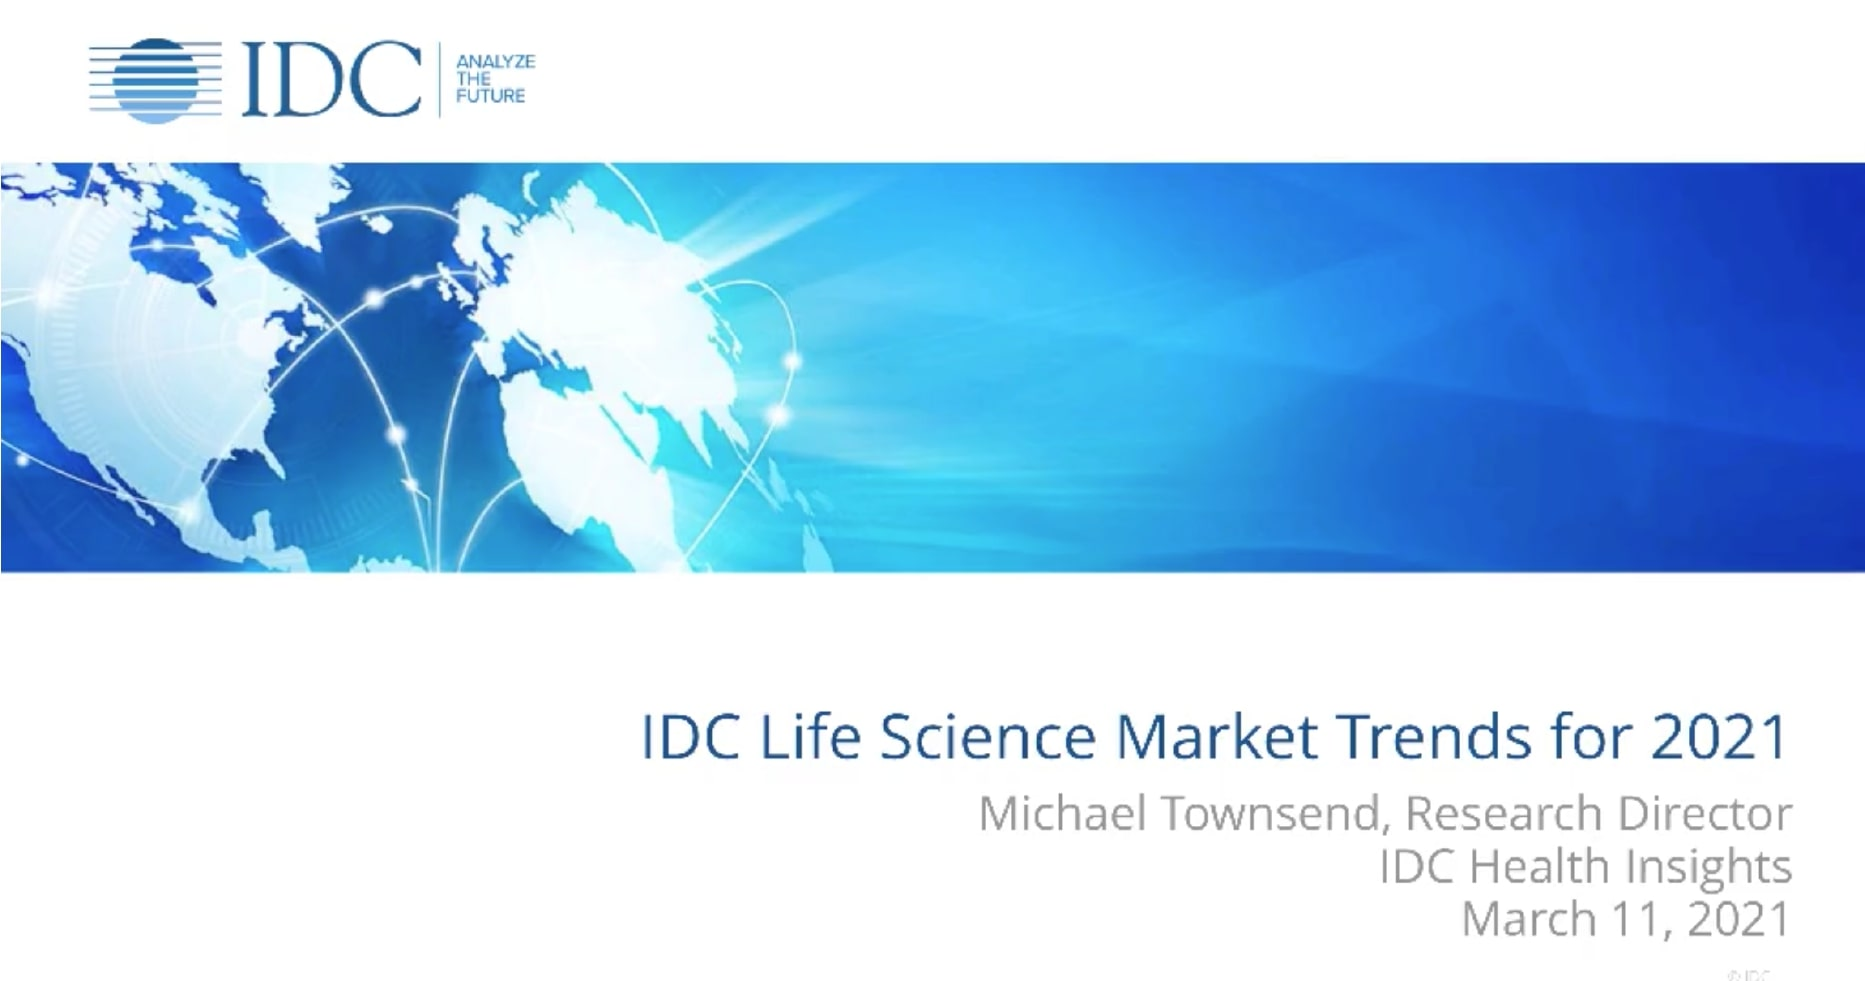 idc-life-science-market-trends-2021-thank-you-1864x980